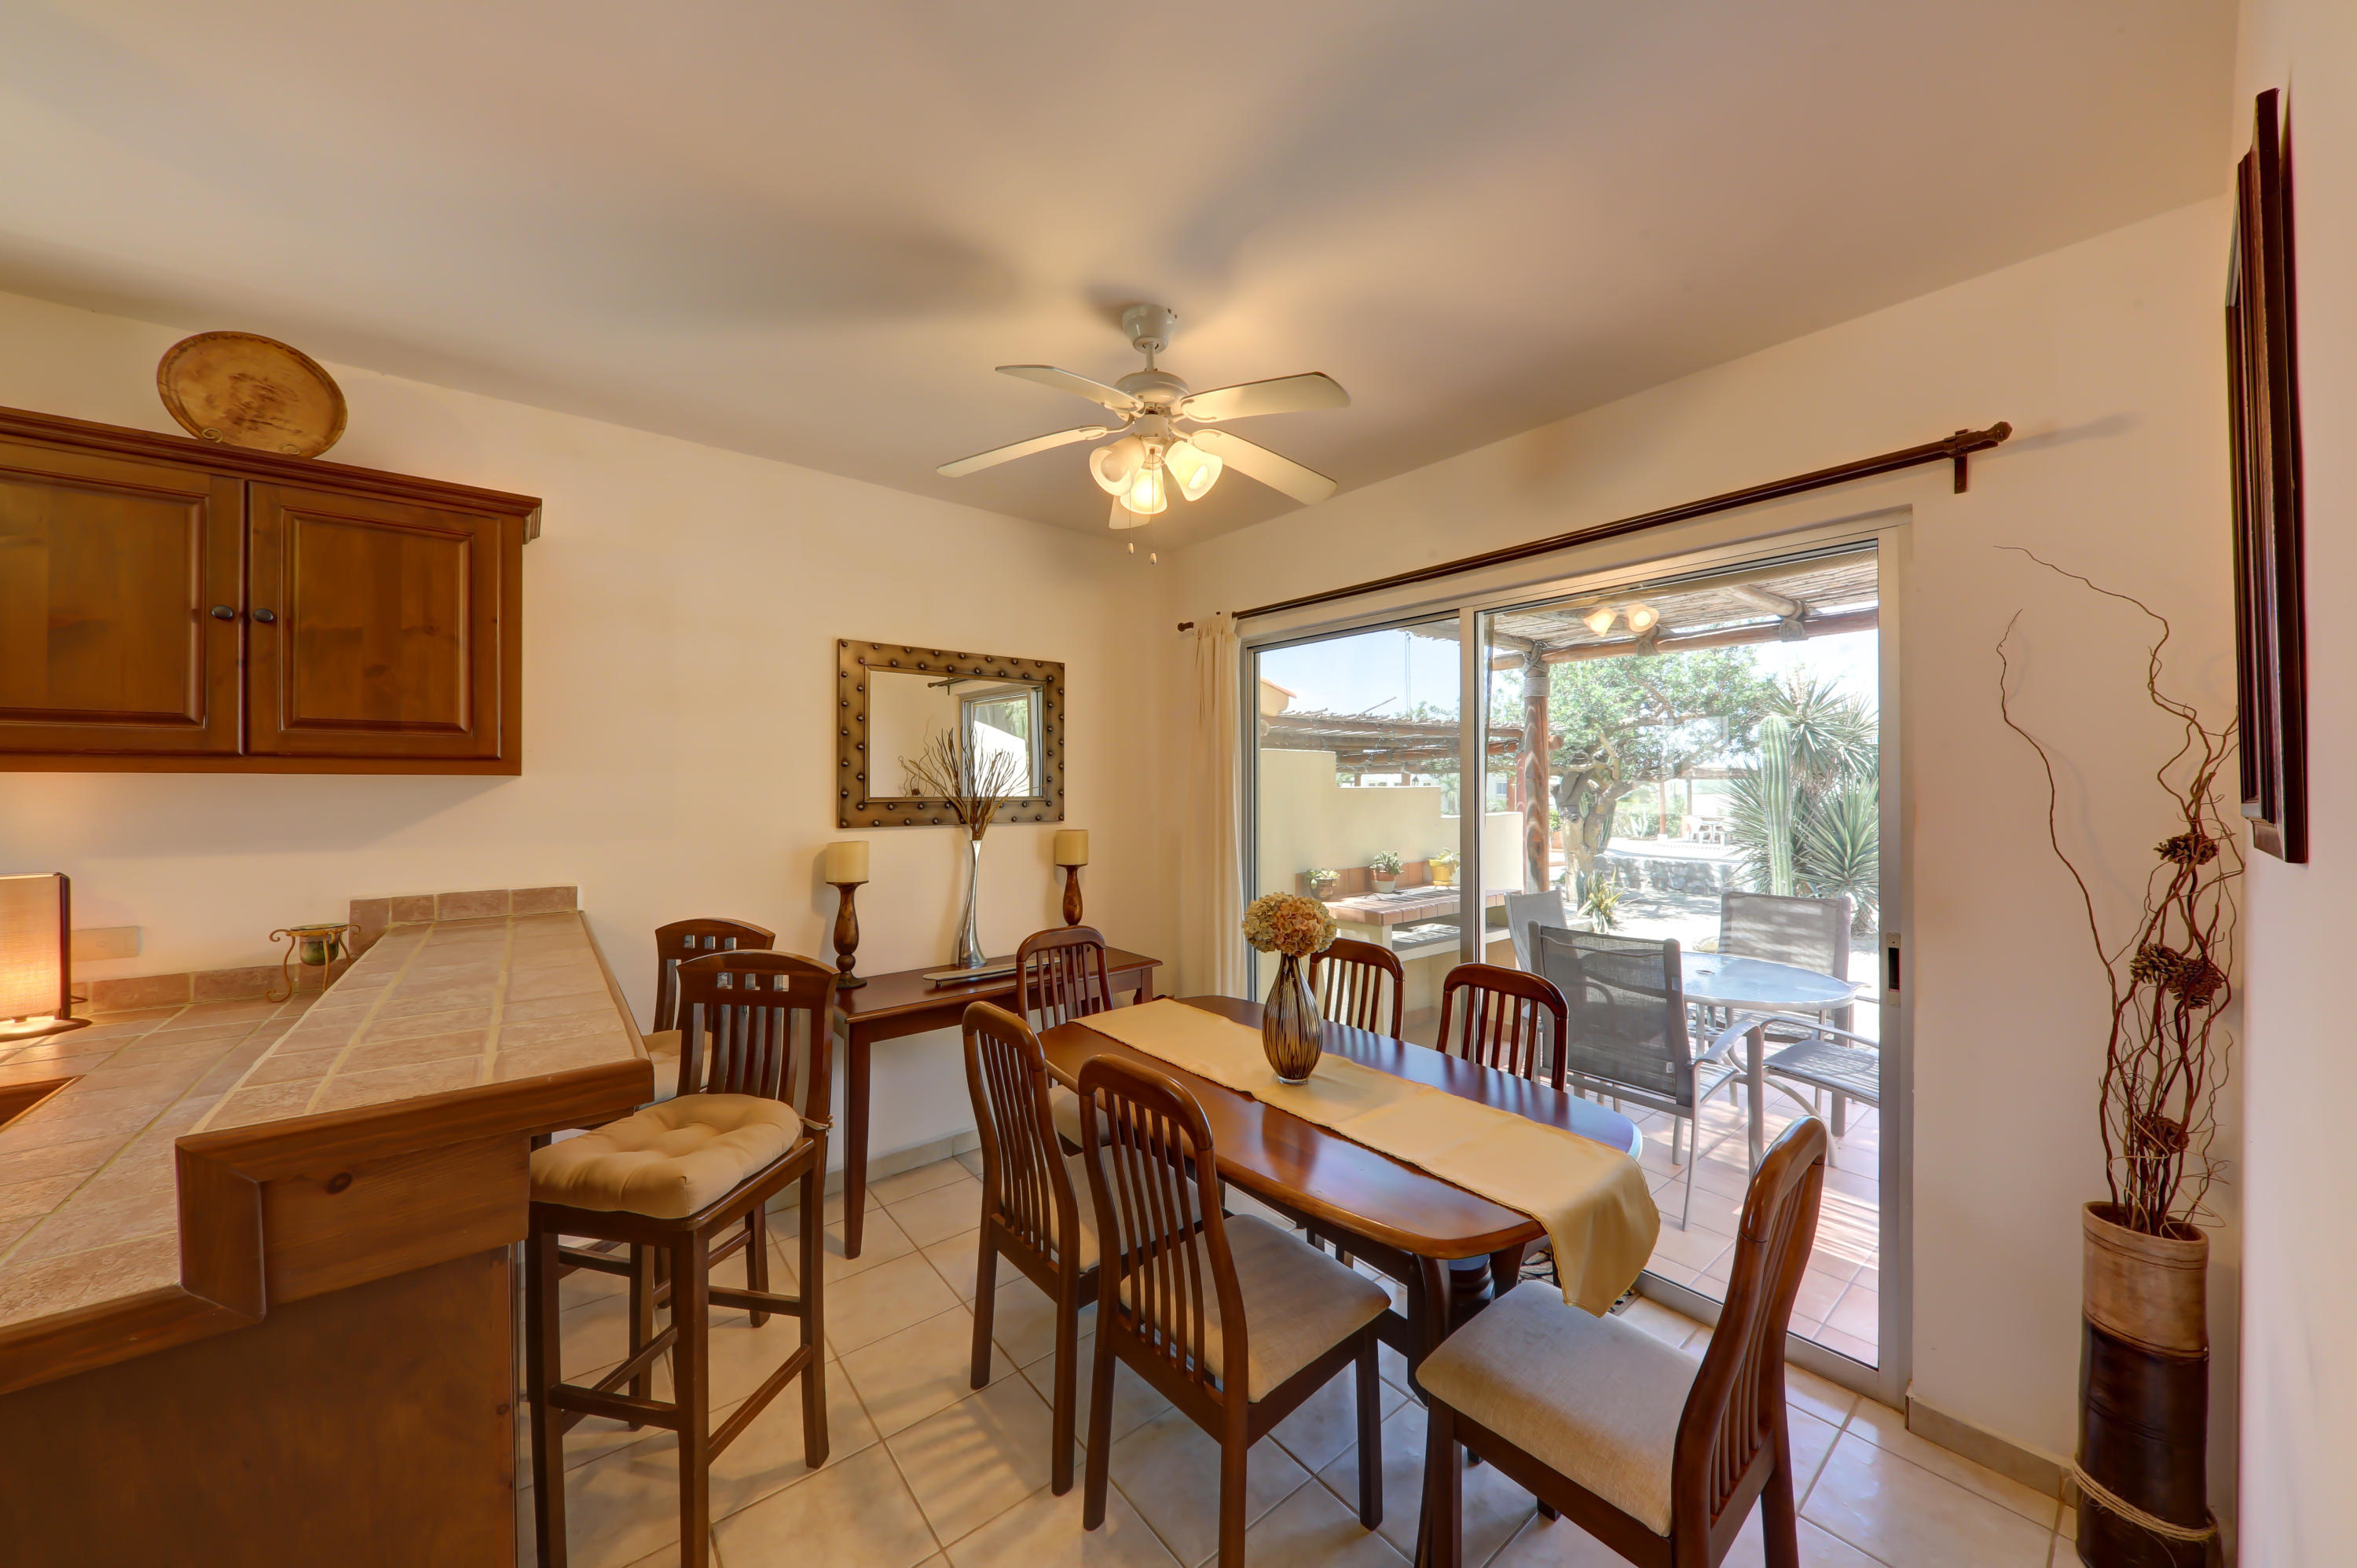 Single Level 2 Bedroom Home-5